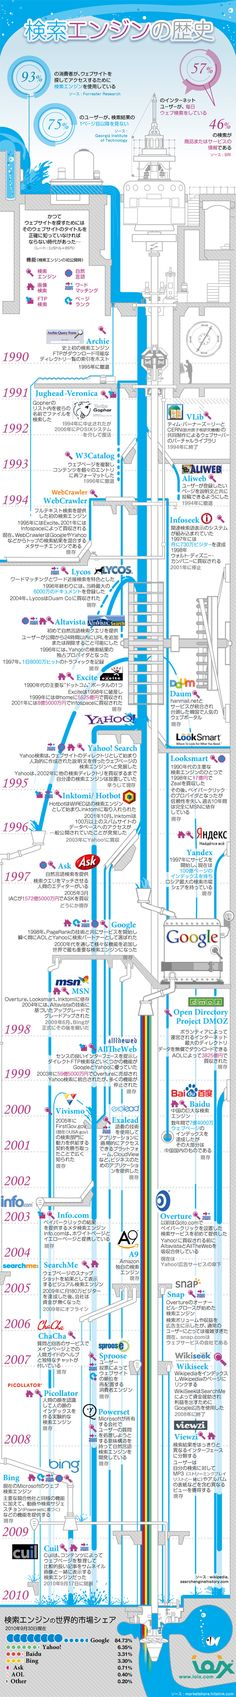 The history of search engines